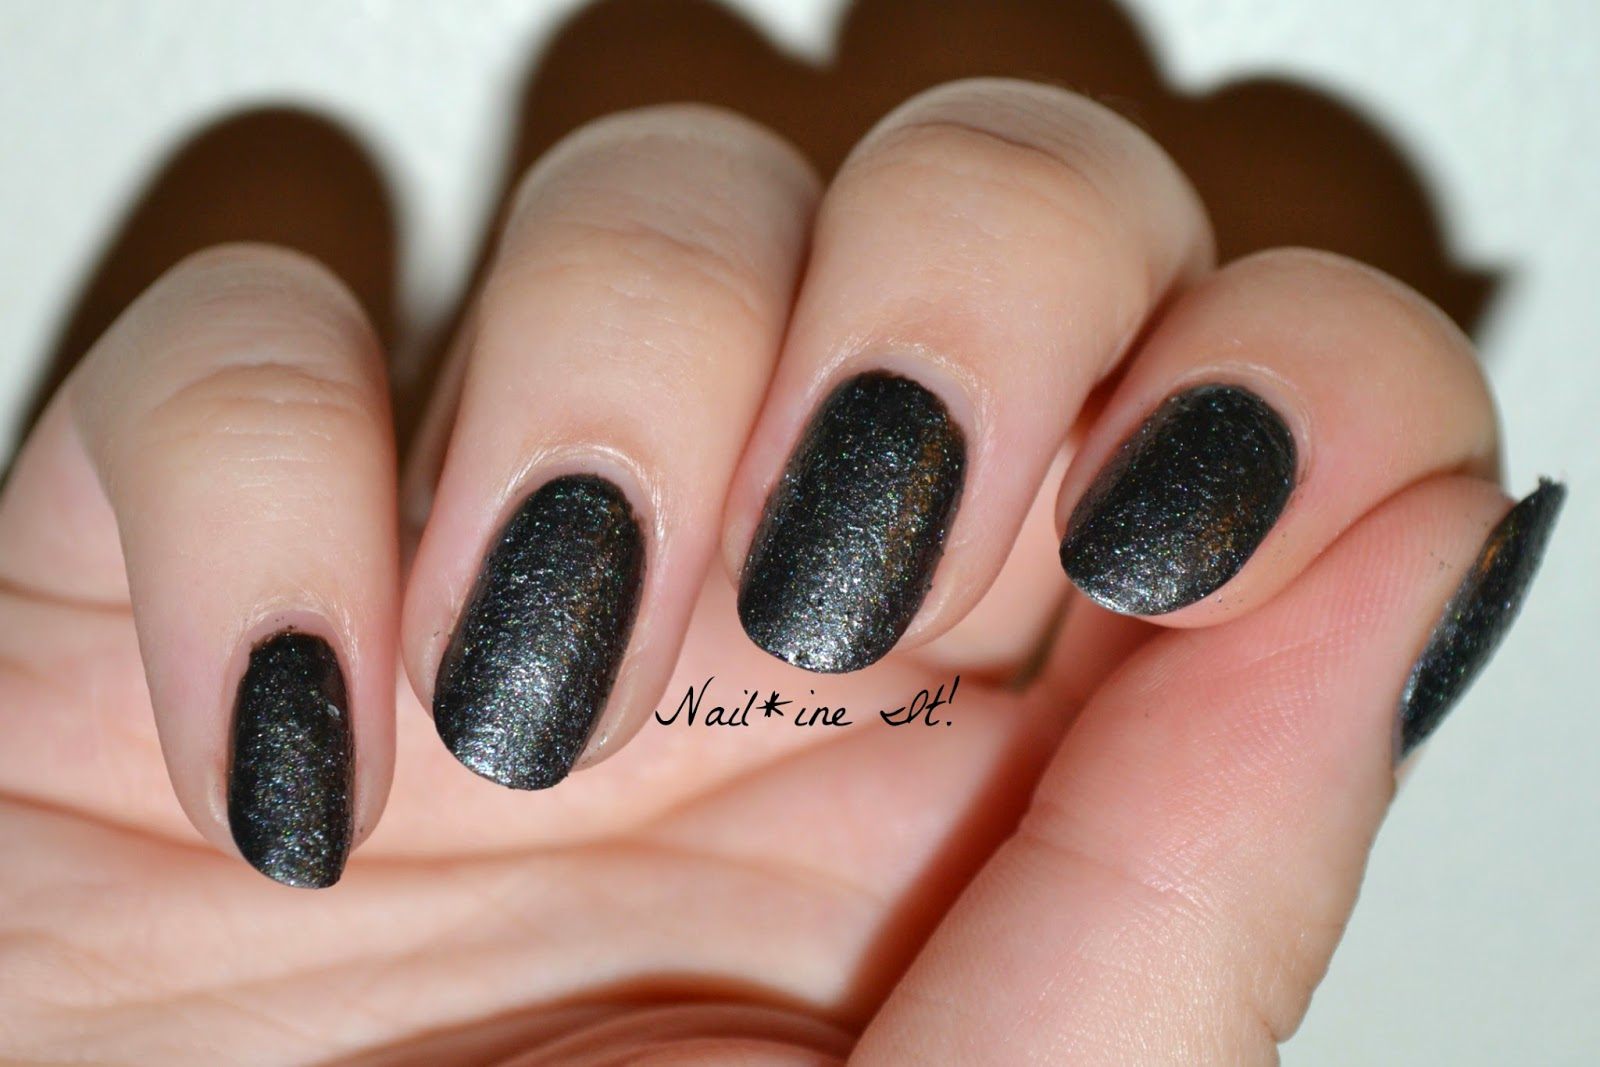 Line Texture On Nails : Nail ine it lvx graphite texturized swatches